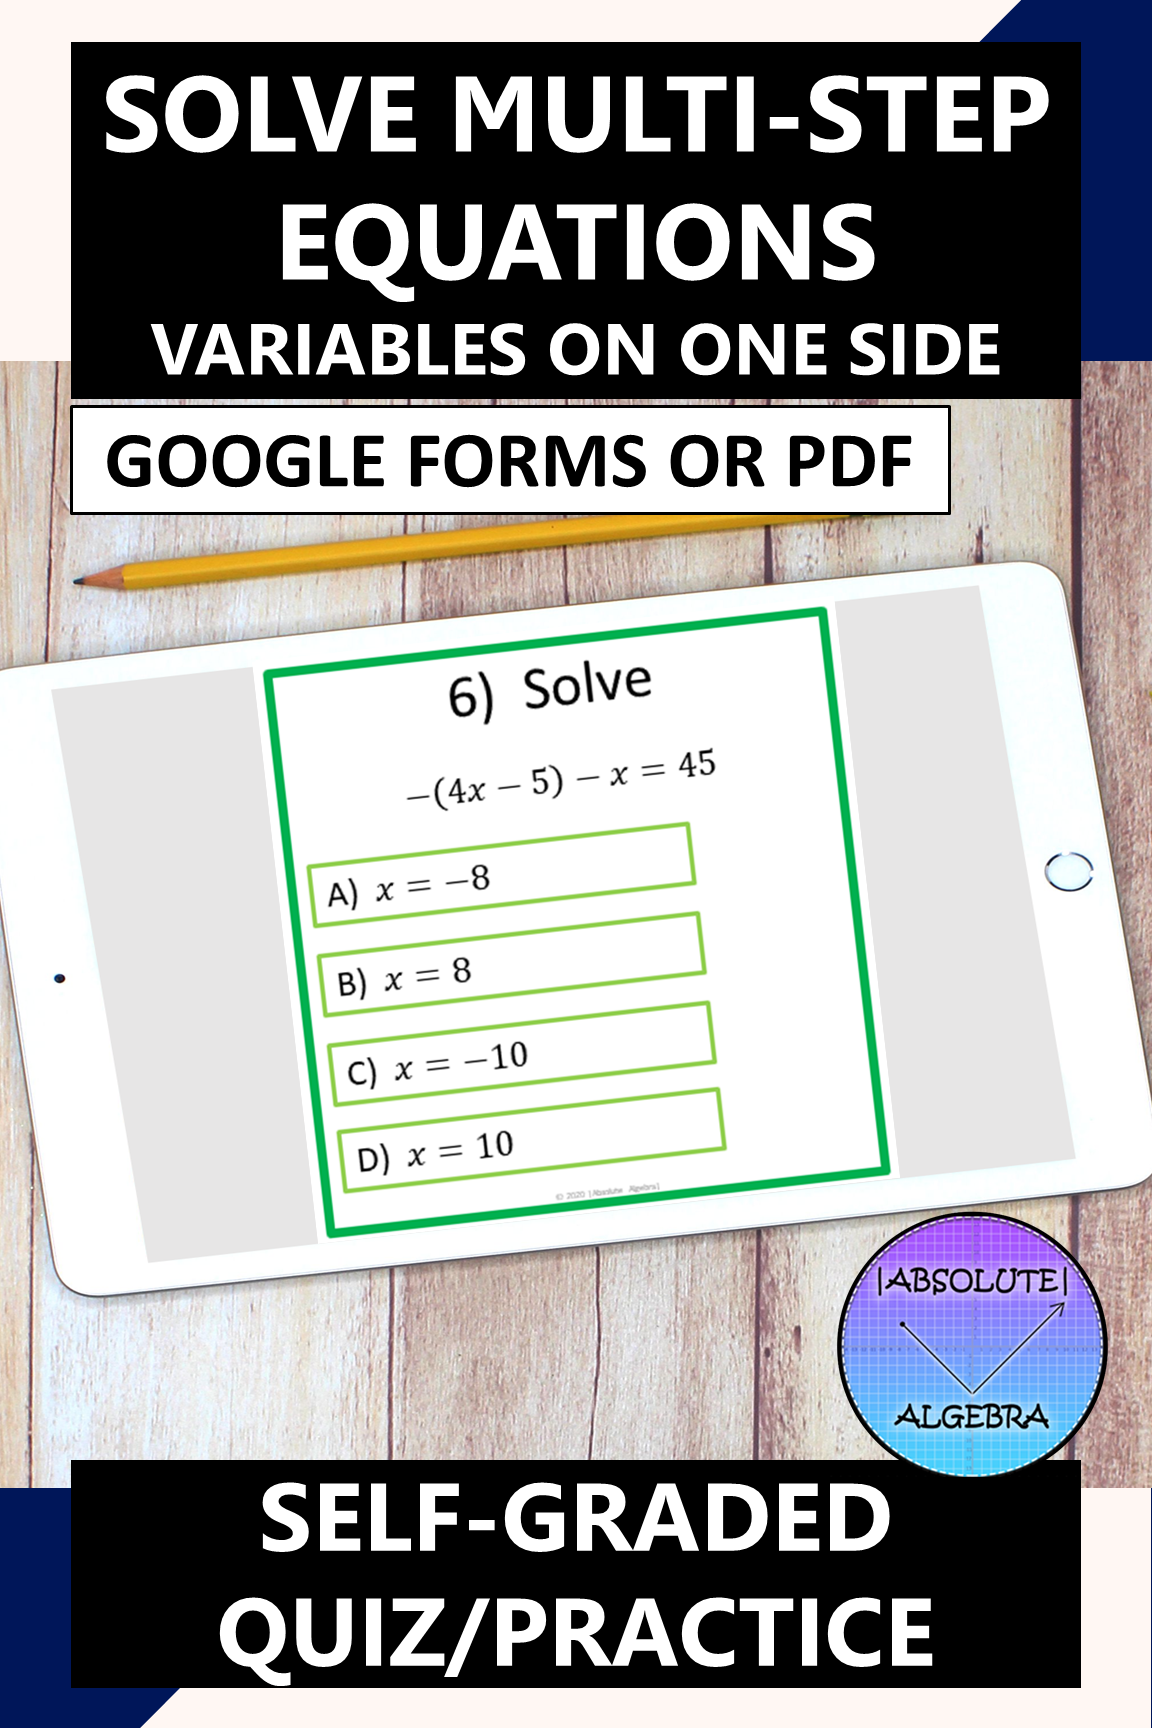 SOLVE MULTI-STEP EQUATIONS VARIABLES ON ONE SIDE GOOGLE ...